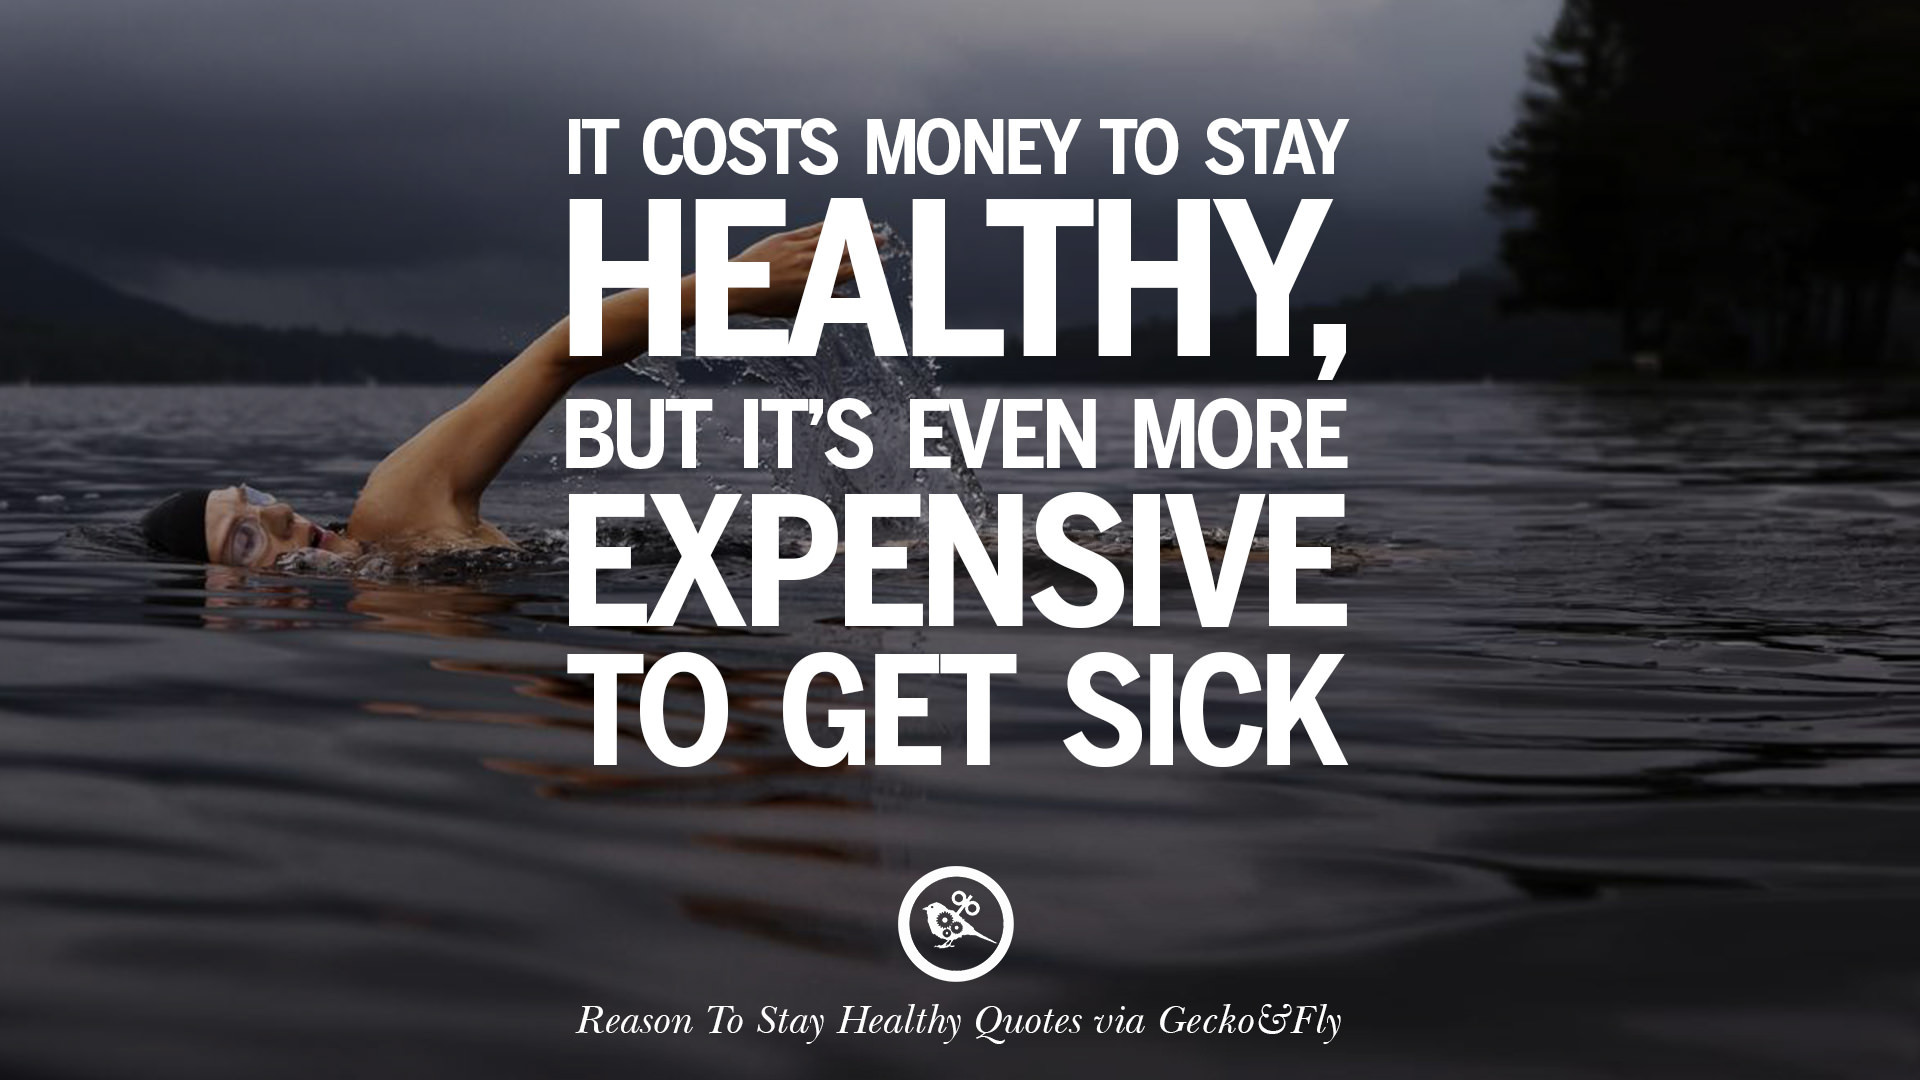 Health Inspirational Quotes  10 Motivational Quotes Reasons To Stay Healthy And Exercise